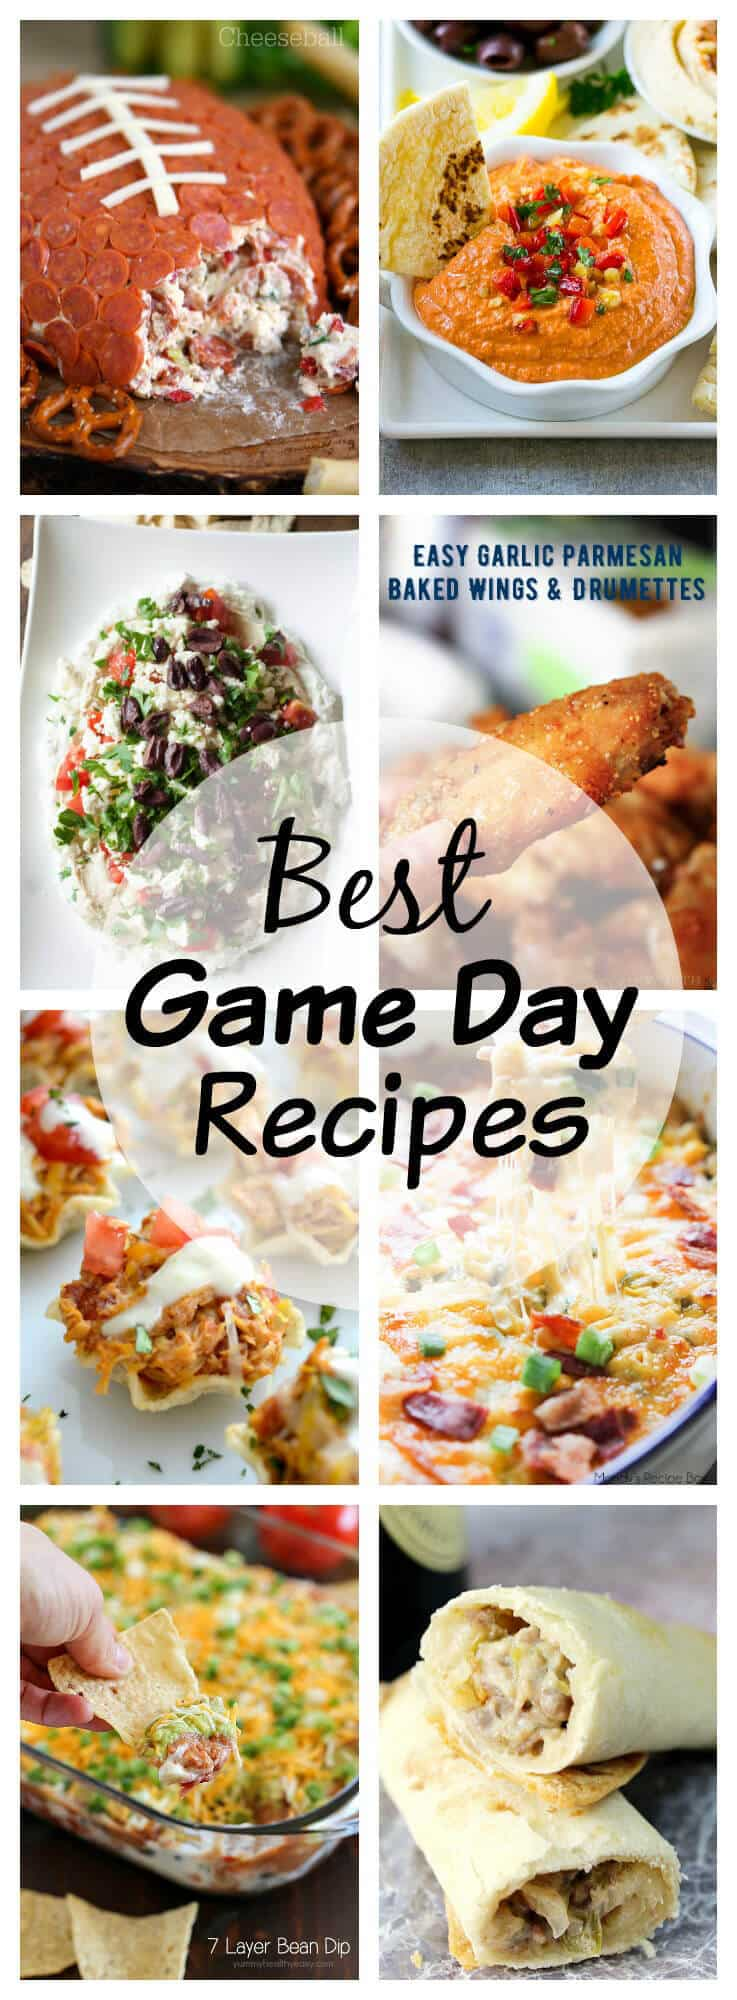 everyone loves easy and delicious game day recipes